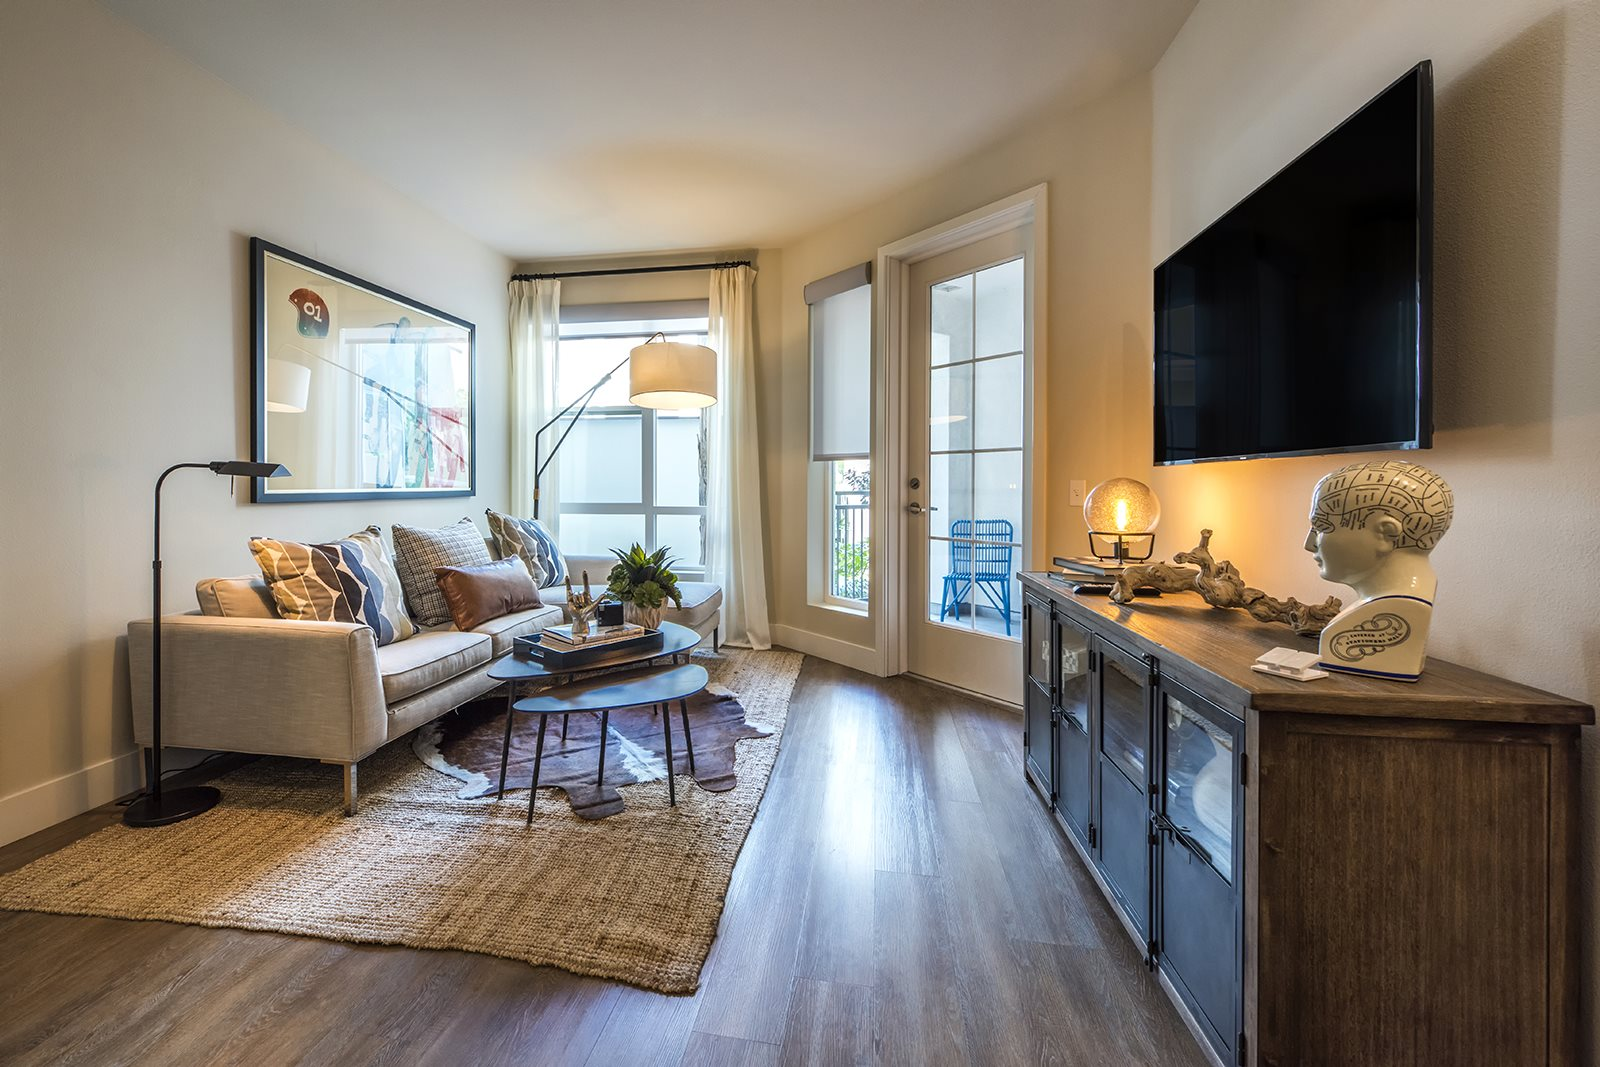 Wood Like Flooring Living Areas in Fullerton, CA- Malden Station by Windsor Apartments